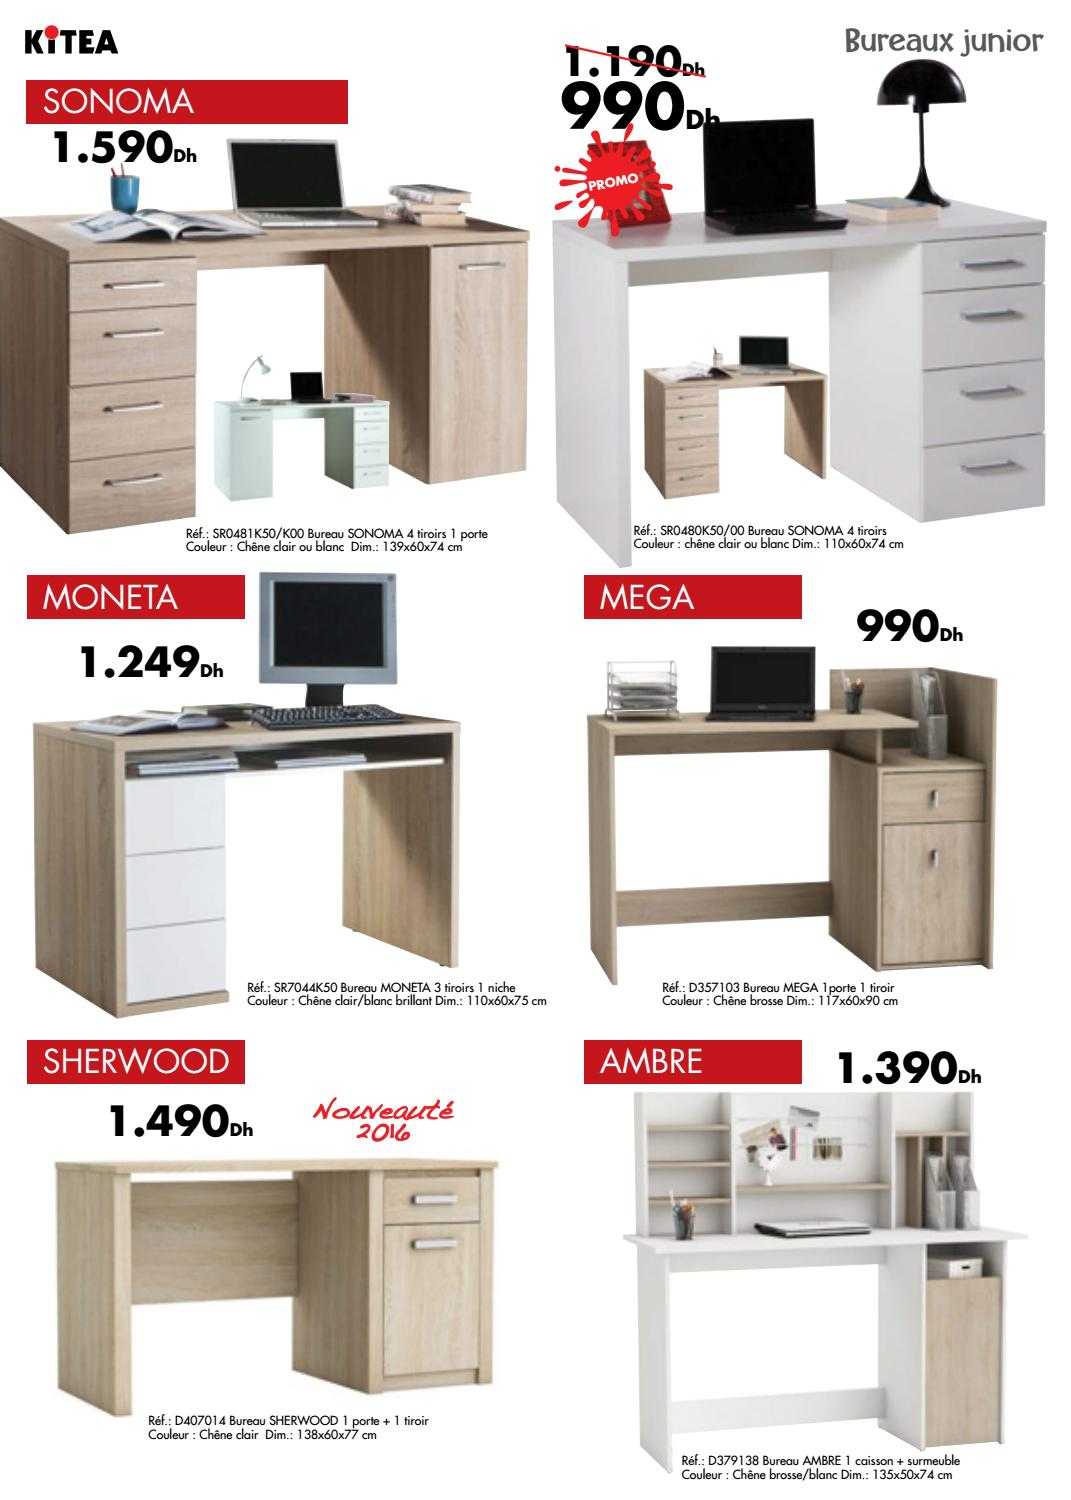 mobilia maroc catalogue catalogue ikea promotions with mobilia maroc catalogue amazing third. Black Bedroom Furniture Sets. Home Design Ideas